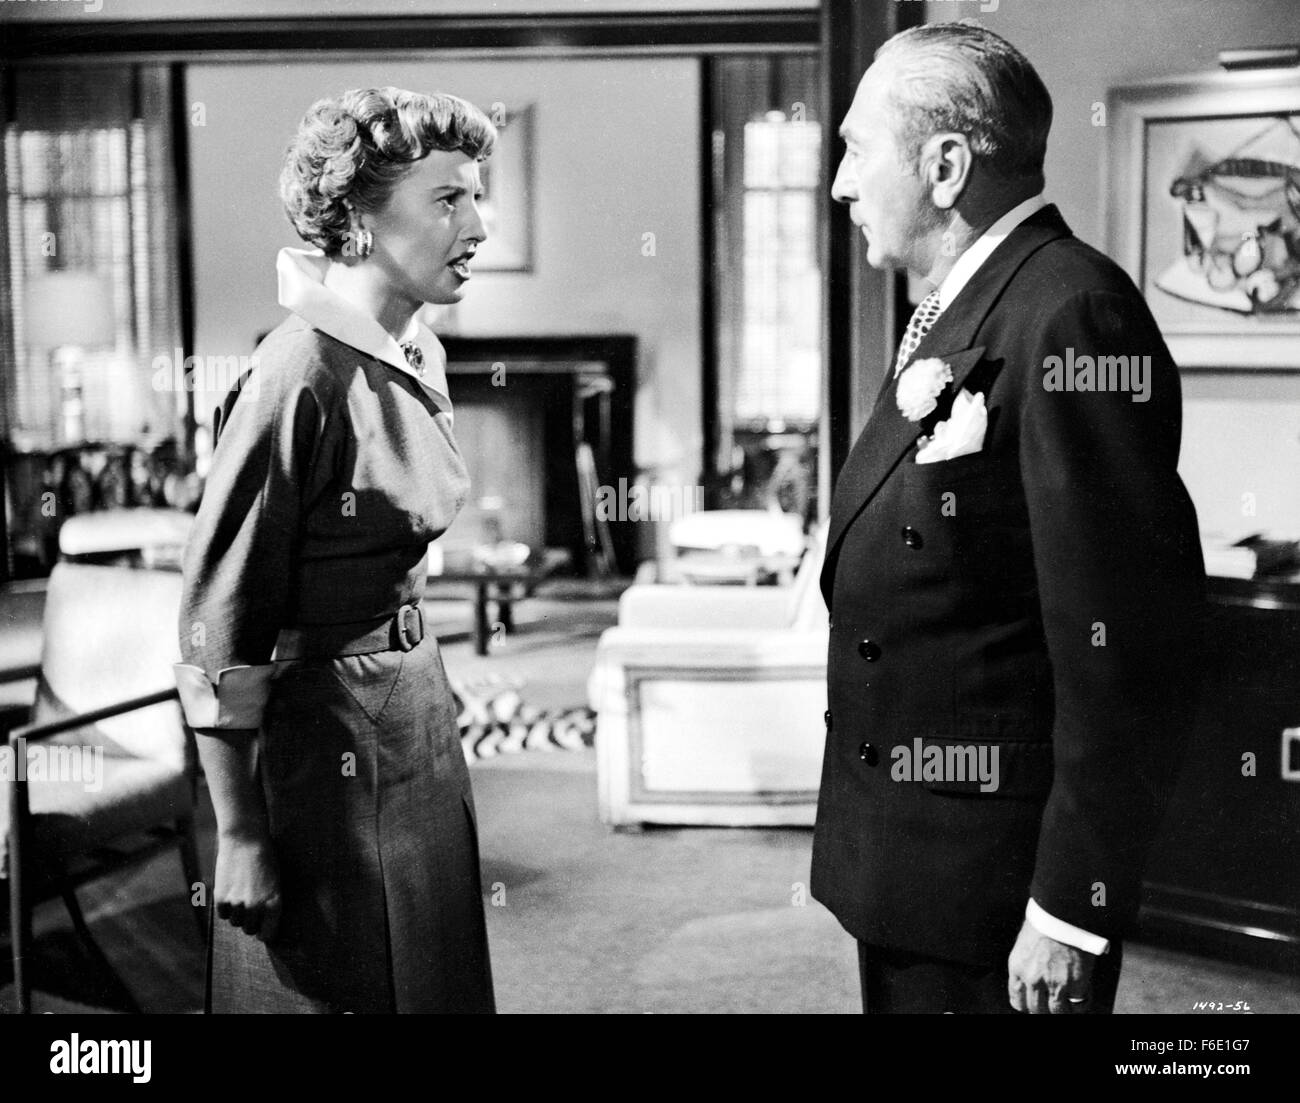 RELEASE DATE: October 13, 1950. MOVIE TITLE: To Please a Lady. STUDIO: Metro-Goldwyn-Mayer (MGM). PLOT: . PICTURED: - Stock Image